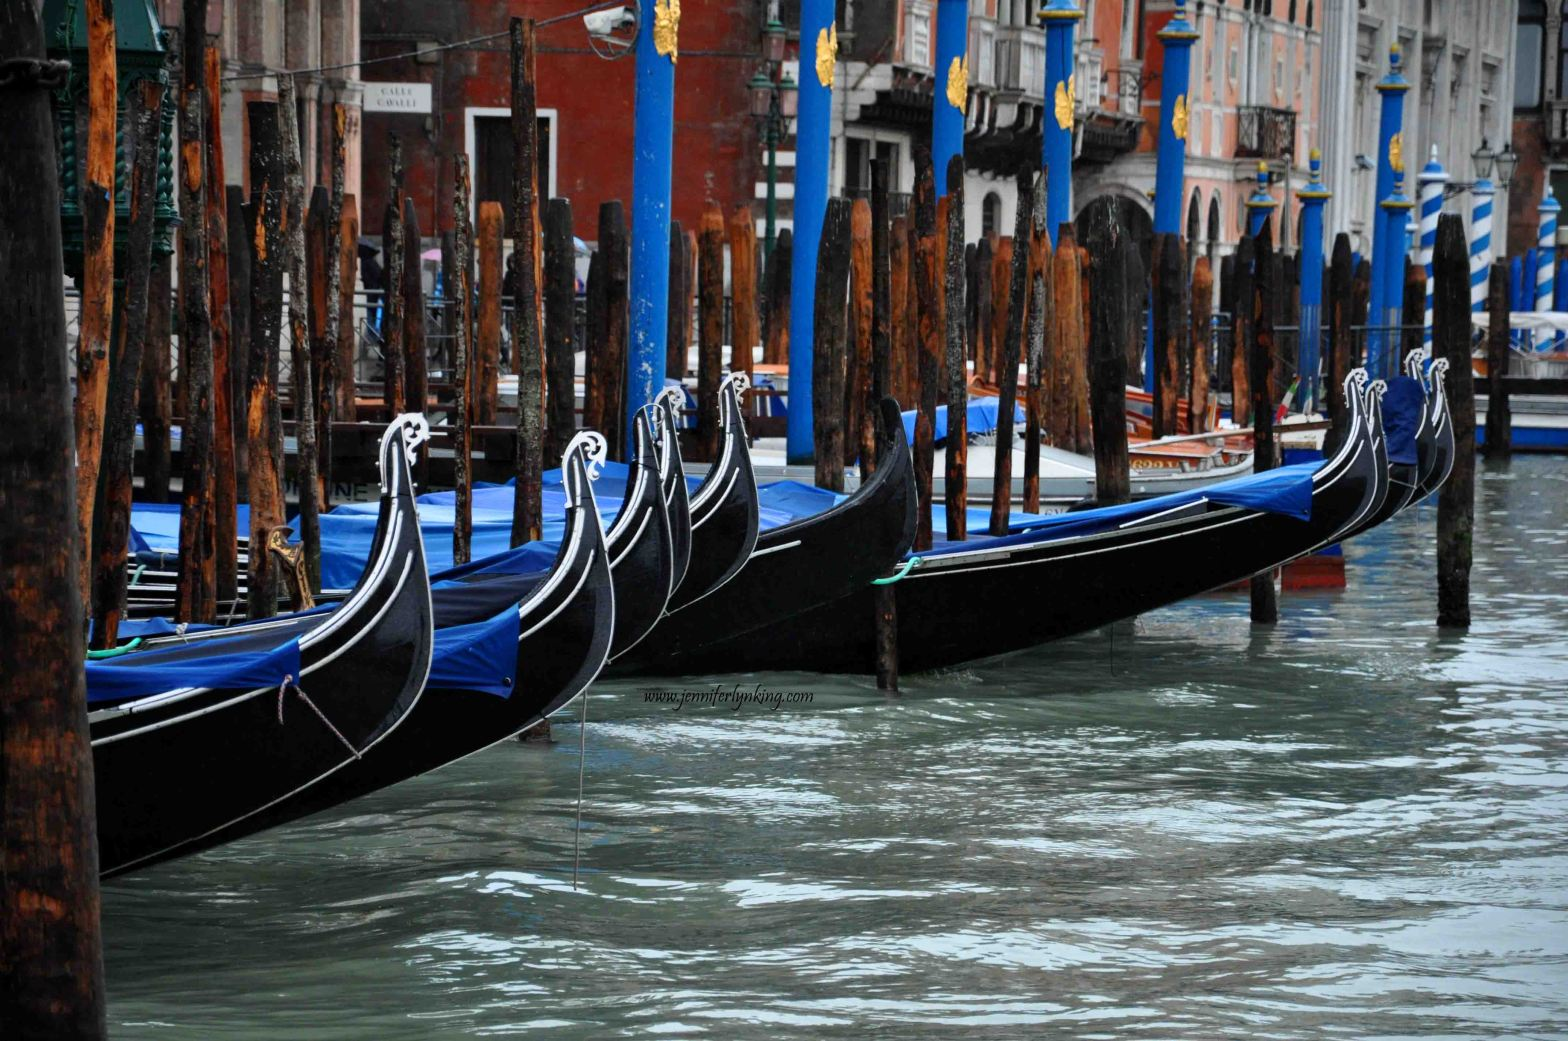 Gondola Parking in Venice